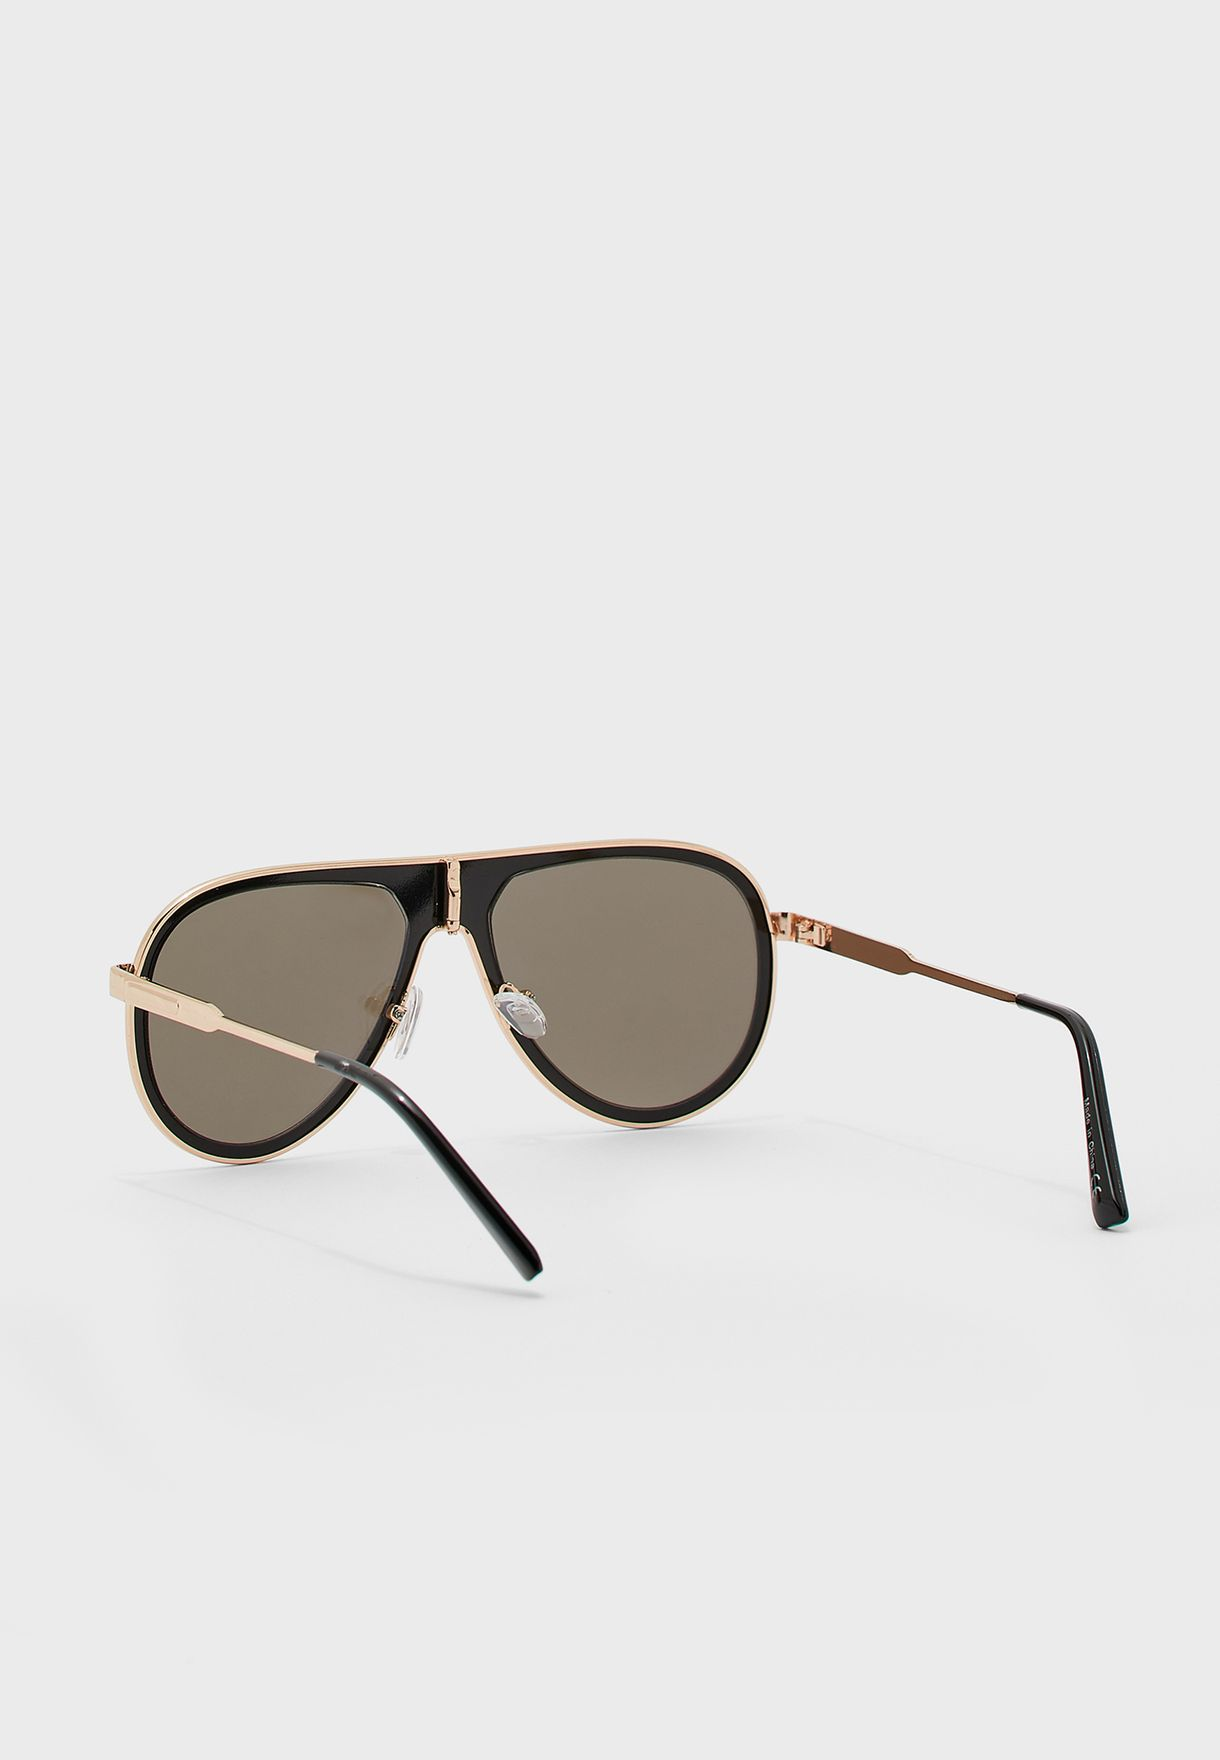 Barnish Sunglasses